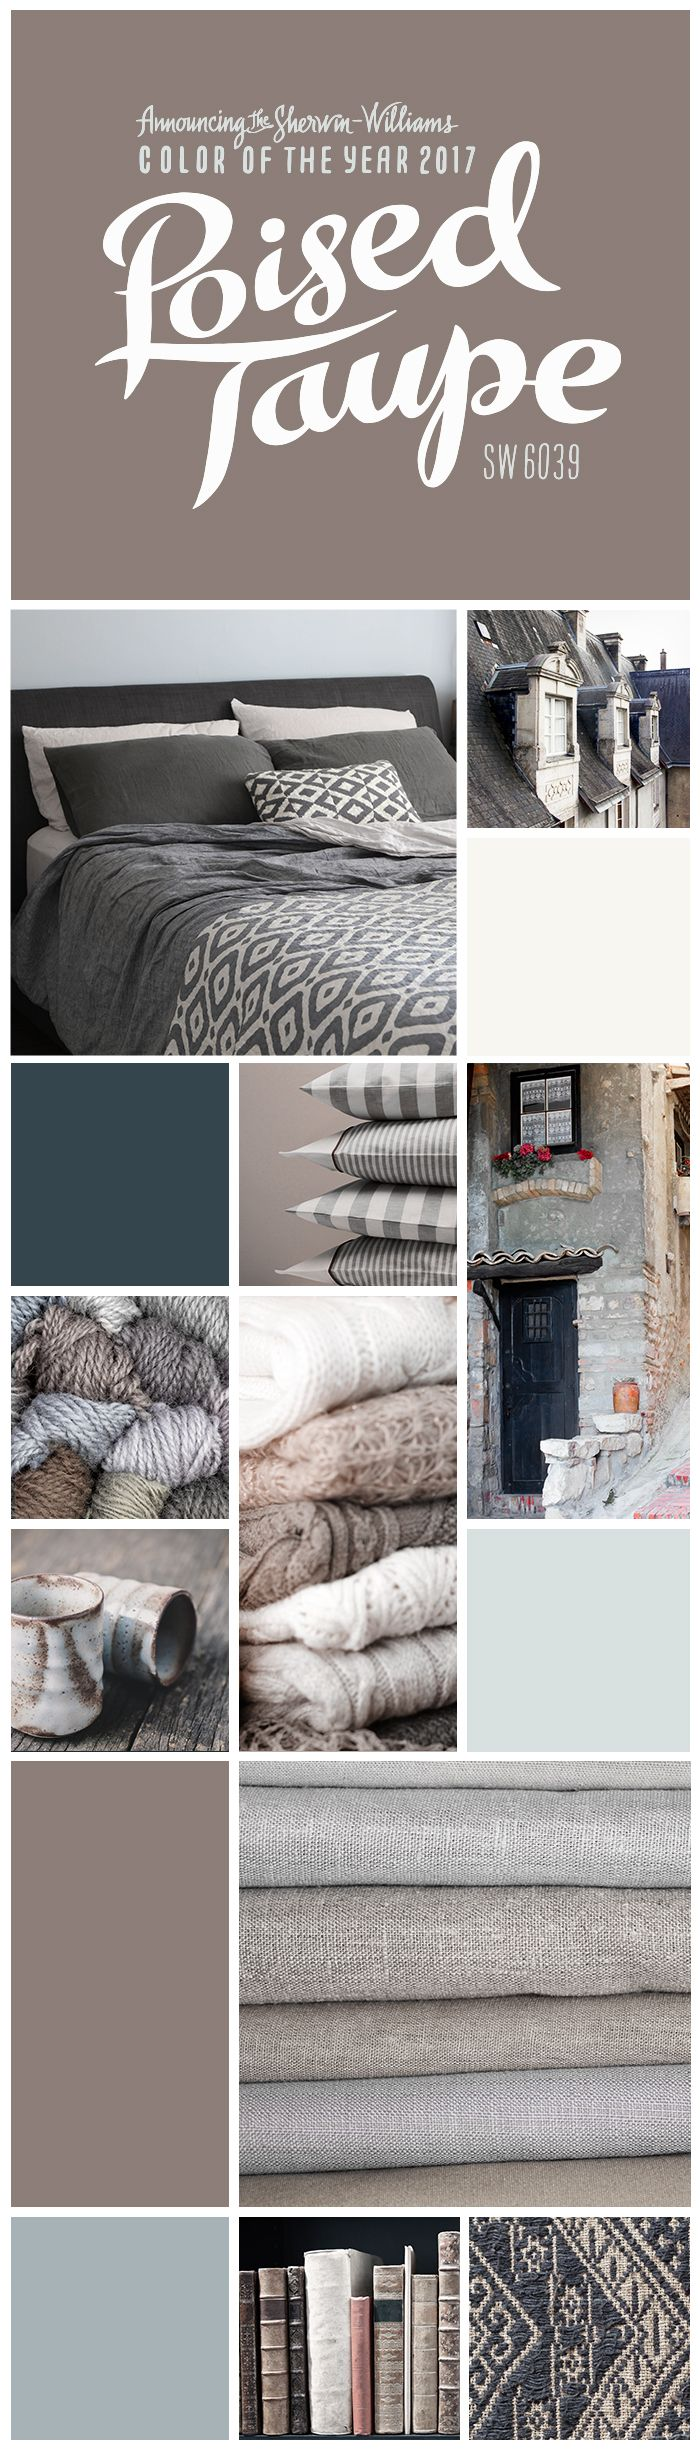 Inspired by aesthetics that range from weathered and woodsy to contemporary and graphic, we chose Poised Taupe SW 6039 as our 2017 Color of the Year. Effortlessly balancing warm brown and cool gray tones, Poised Taupe is a timeless neutral. In this palette, you can also find Gale Force SW 7605, Stardew SW 9138, Mountain Air SW 6224 and High Reflective White SW 7757.